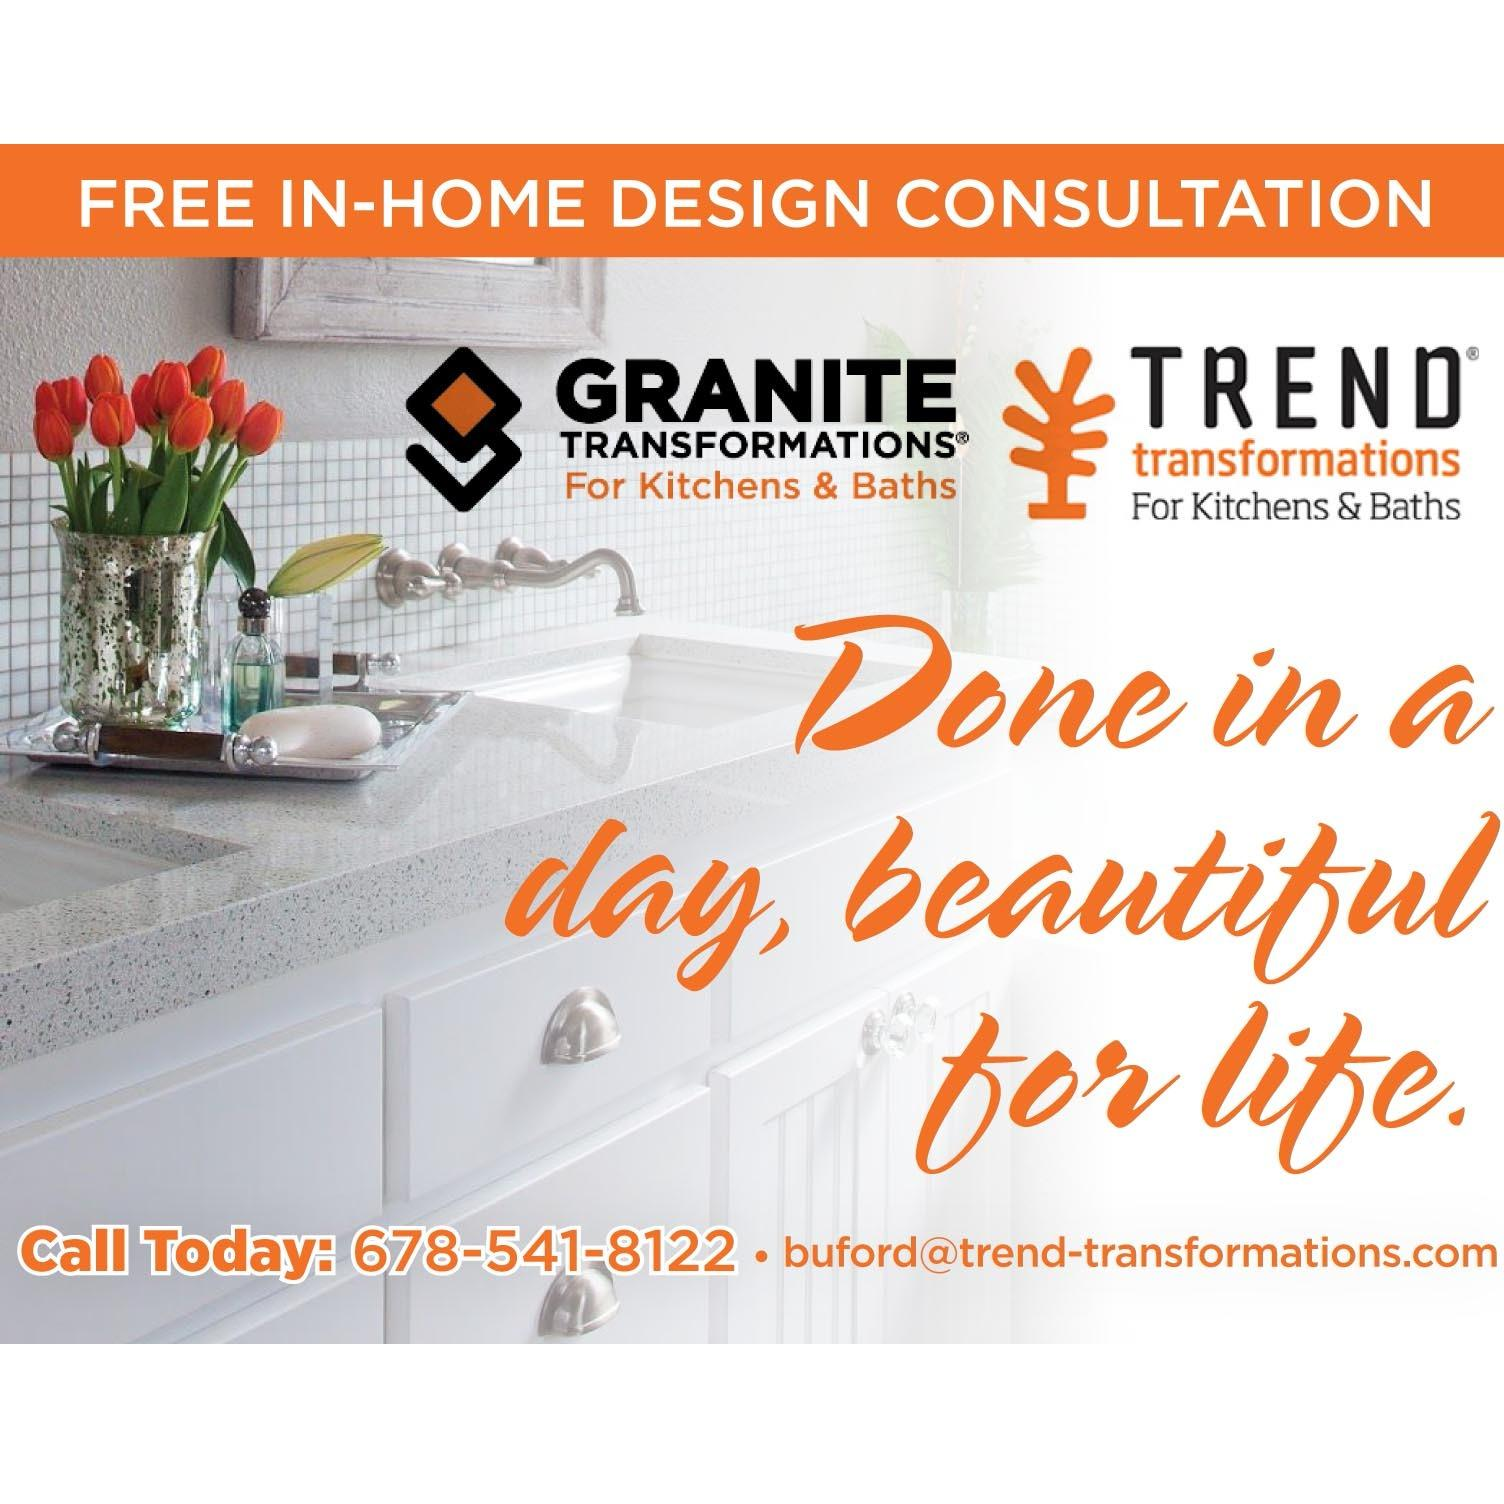 Granite and Trend Transformations of Buford